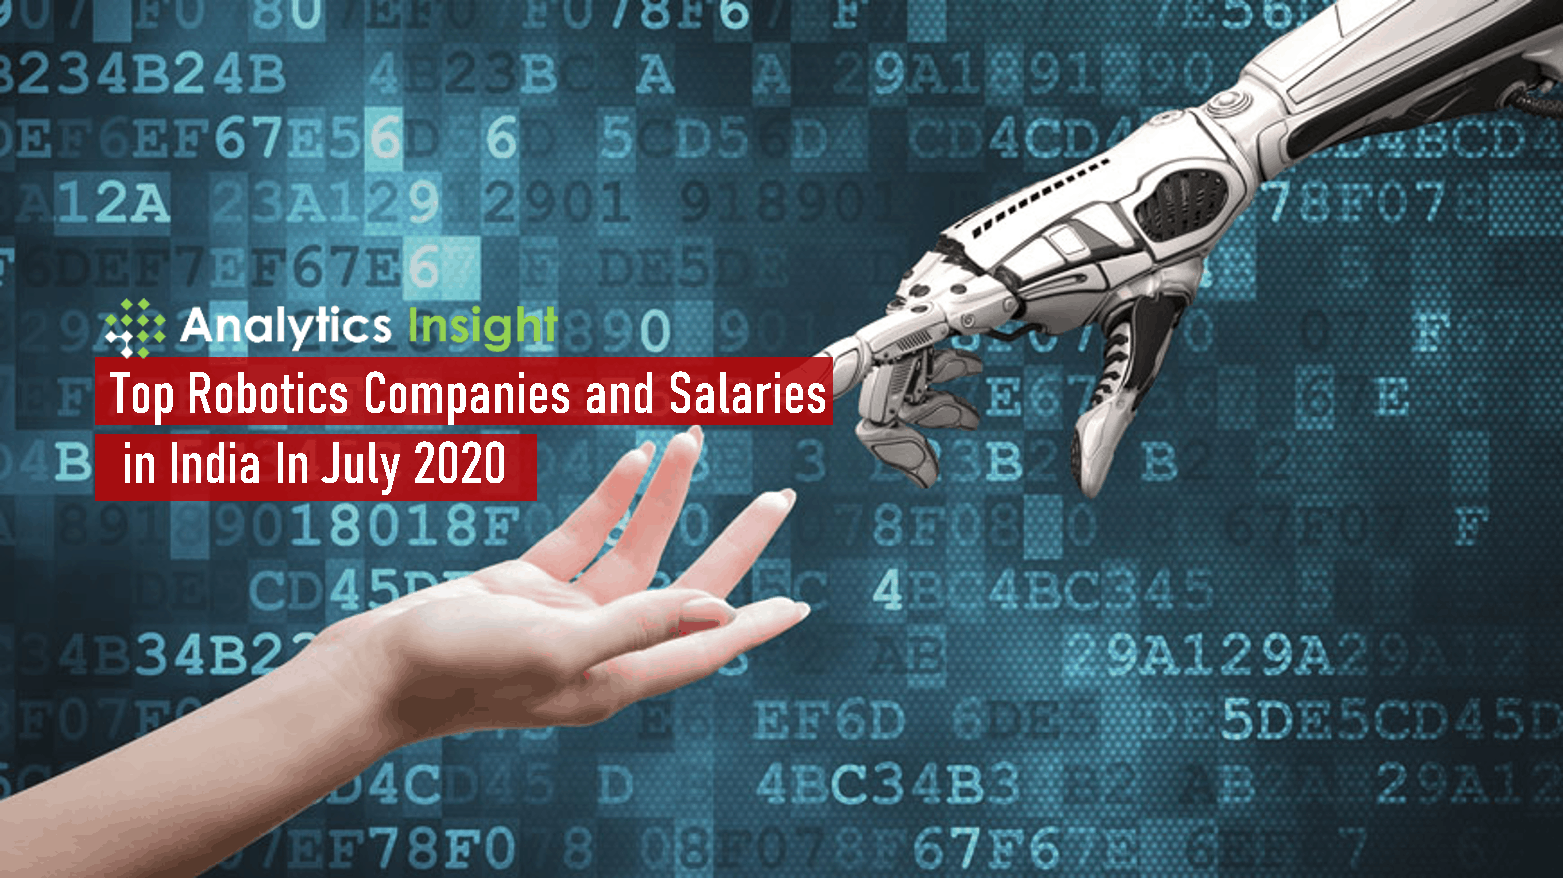 Robotics Companies and Salaries